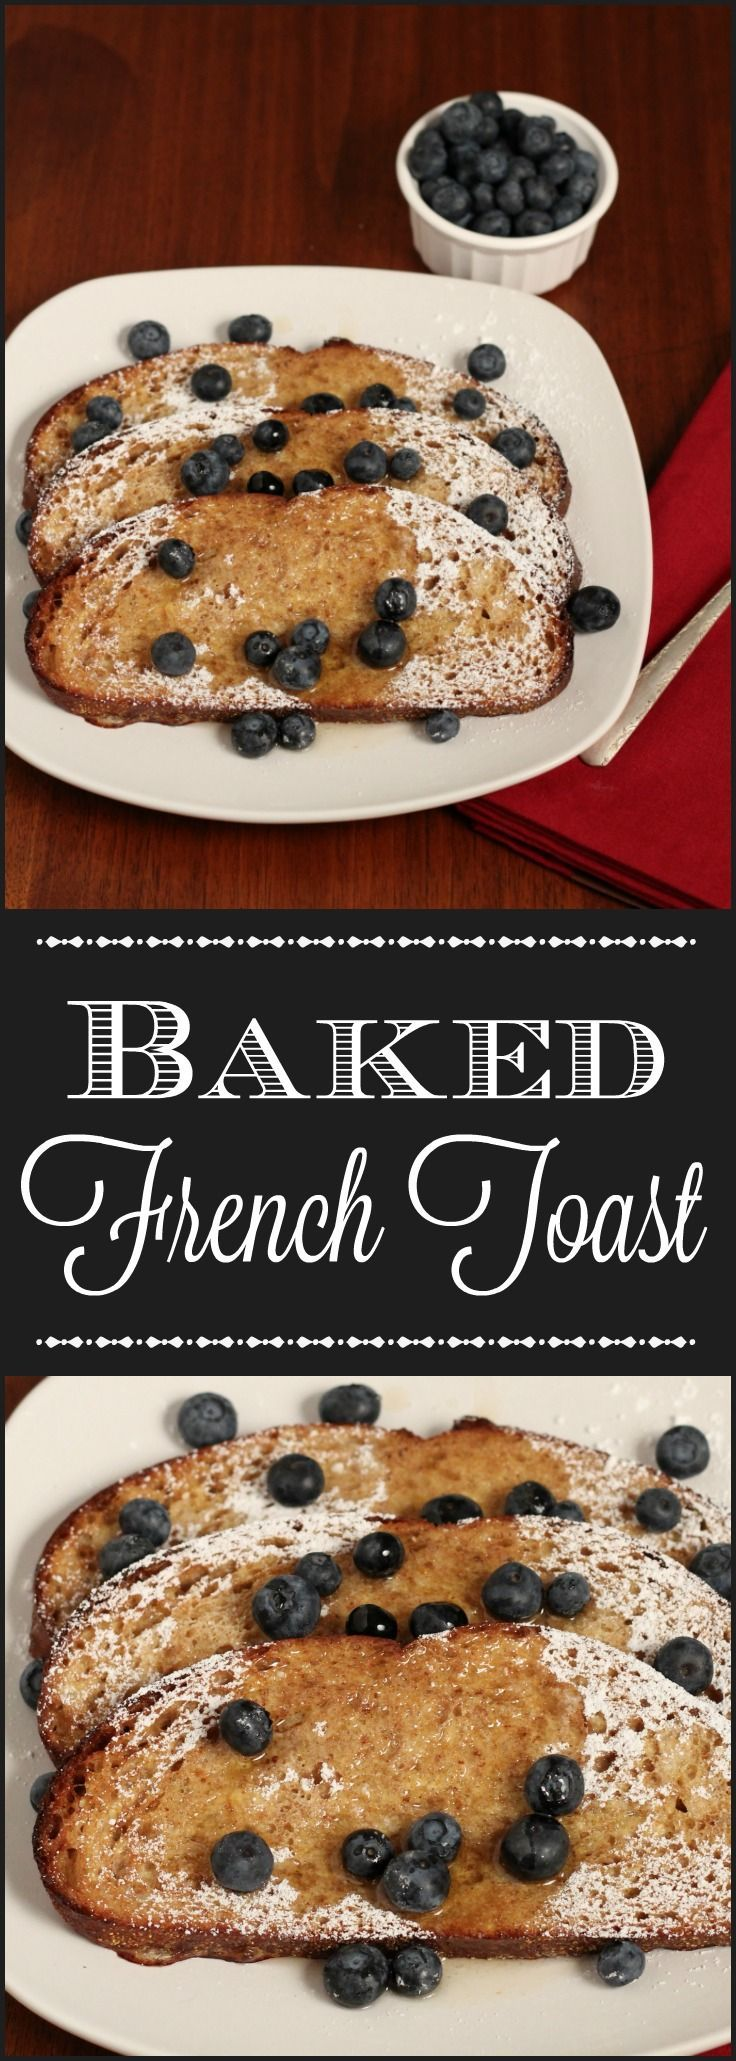 Baked French Toast with Blueberries - one of my favorite for a special breakfast or brunch. Enjoy this recipe makeover with a healthy twist.